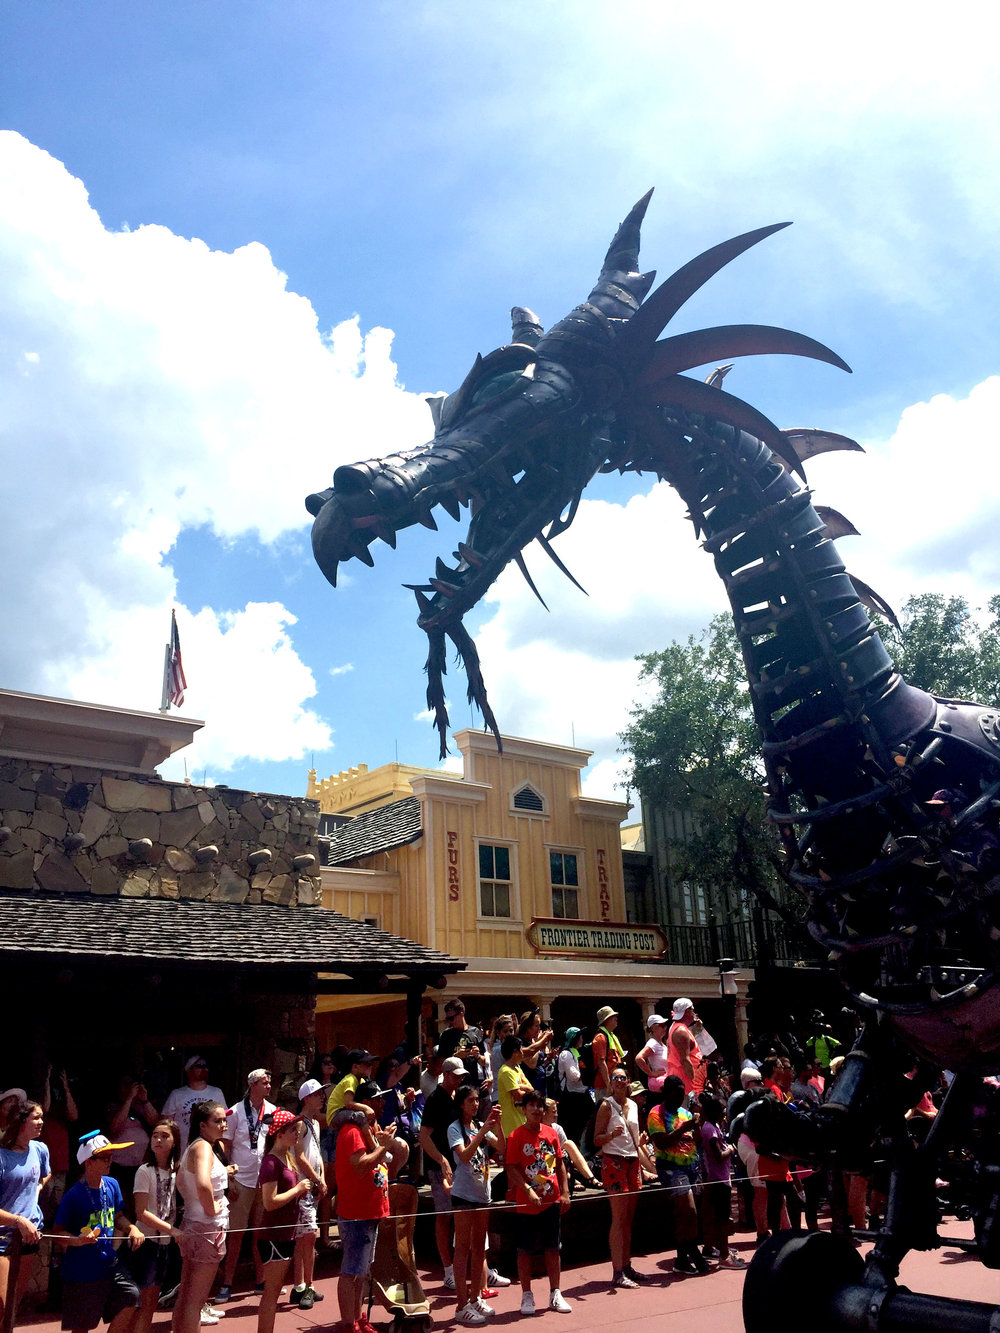 Th giant dragon had a steampunk vibe to it. You could see the cast member steering it from its belly.